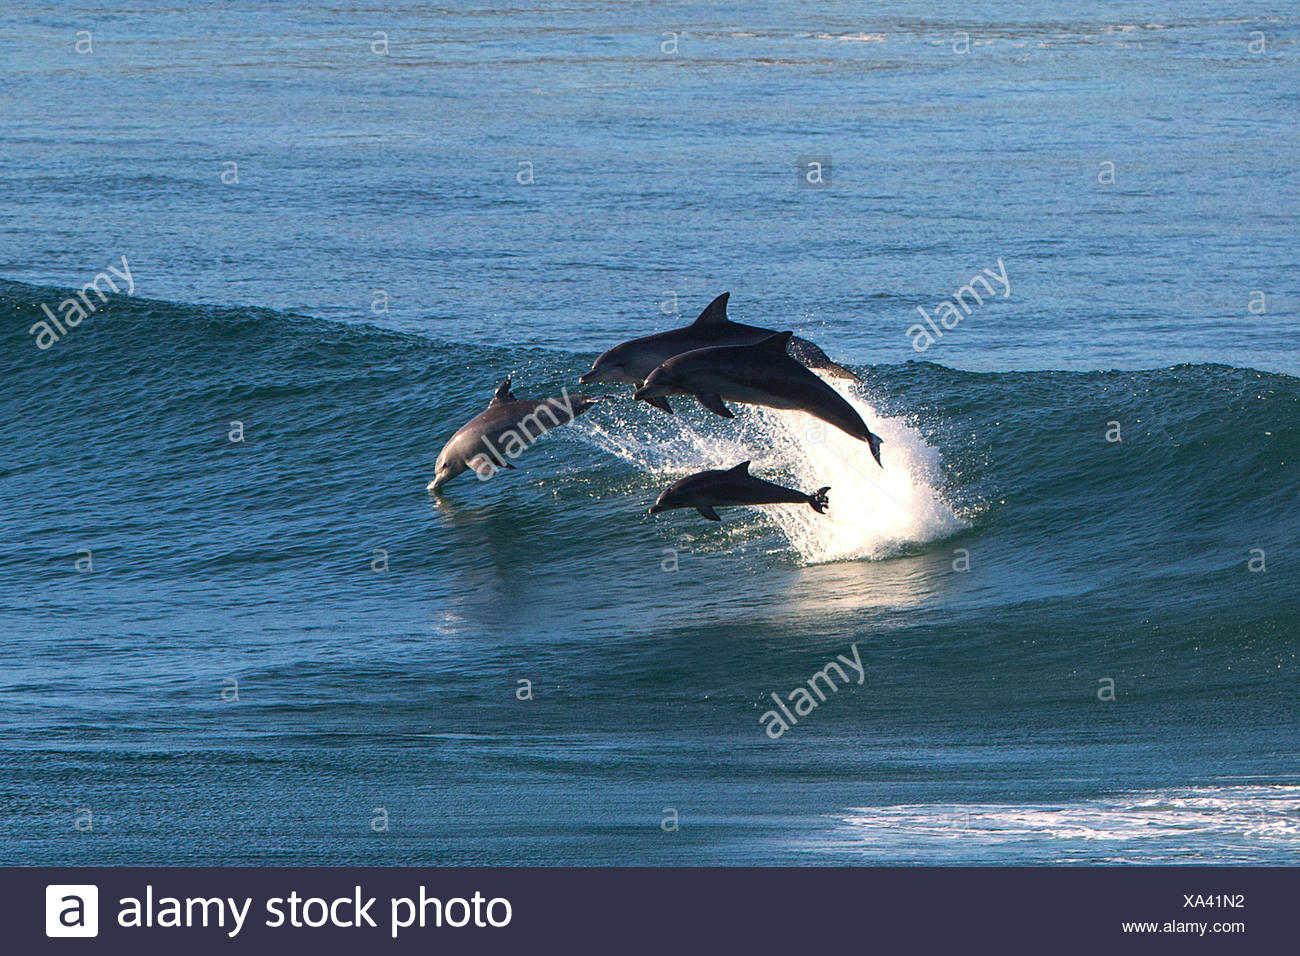 Dolphins leaping out of ocean - Stock Image